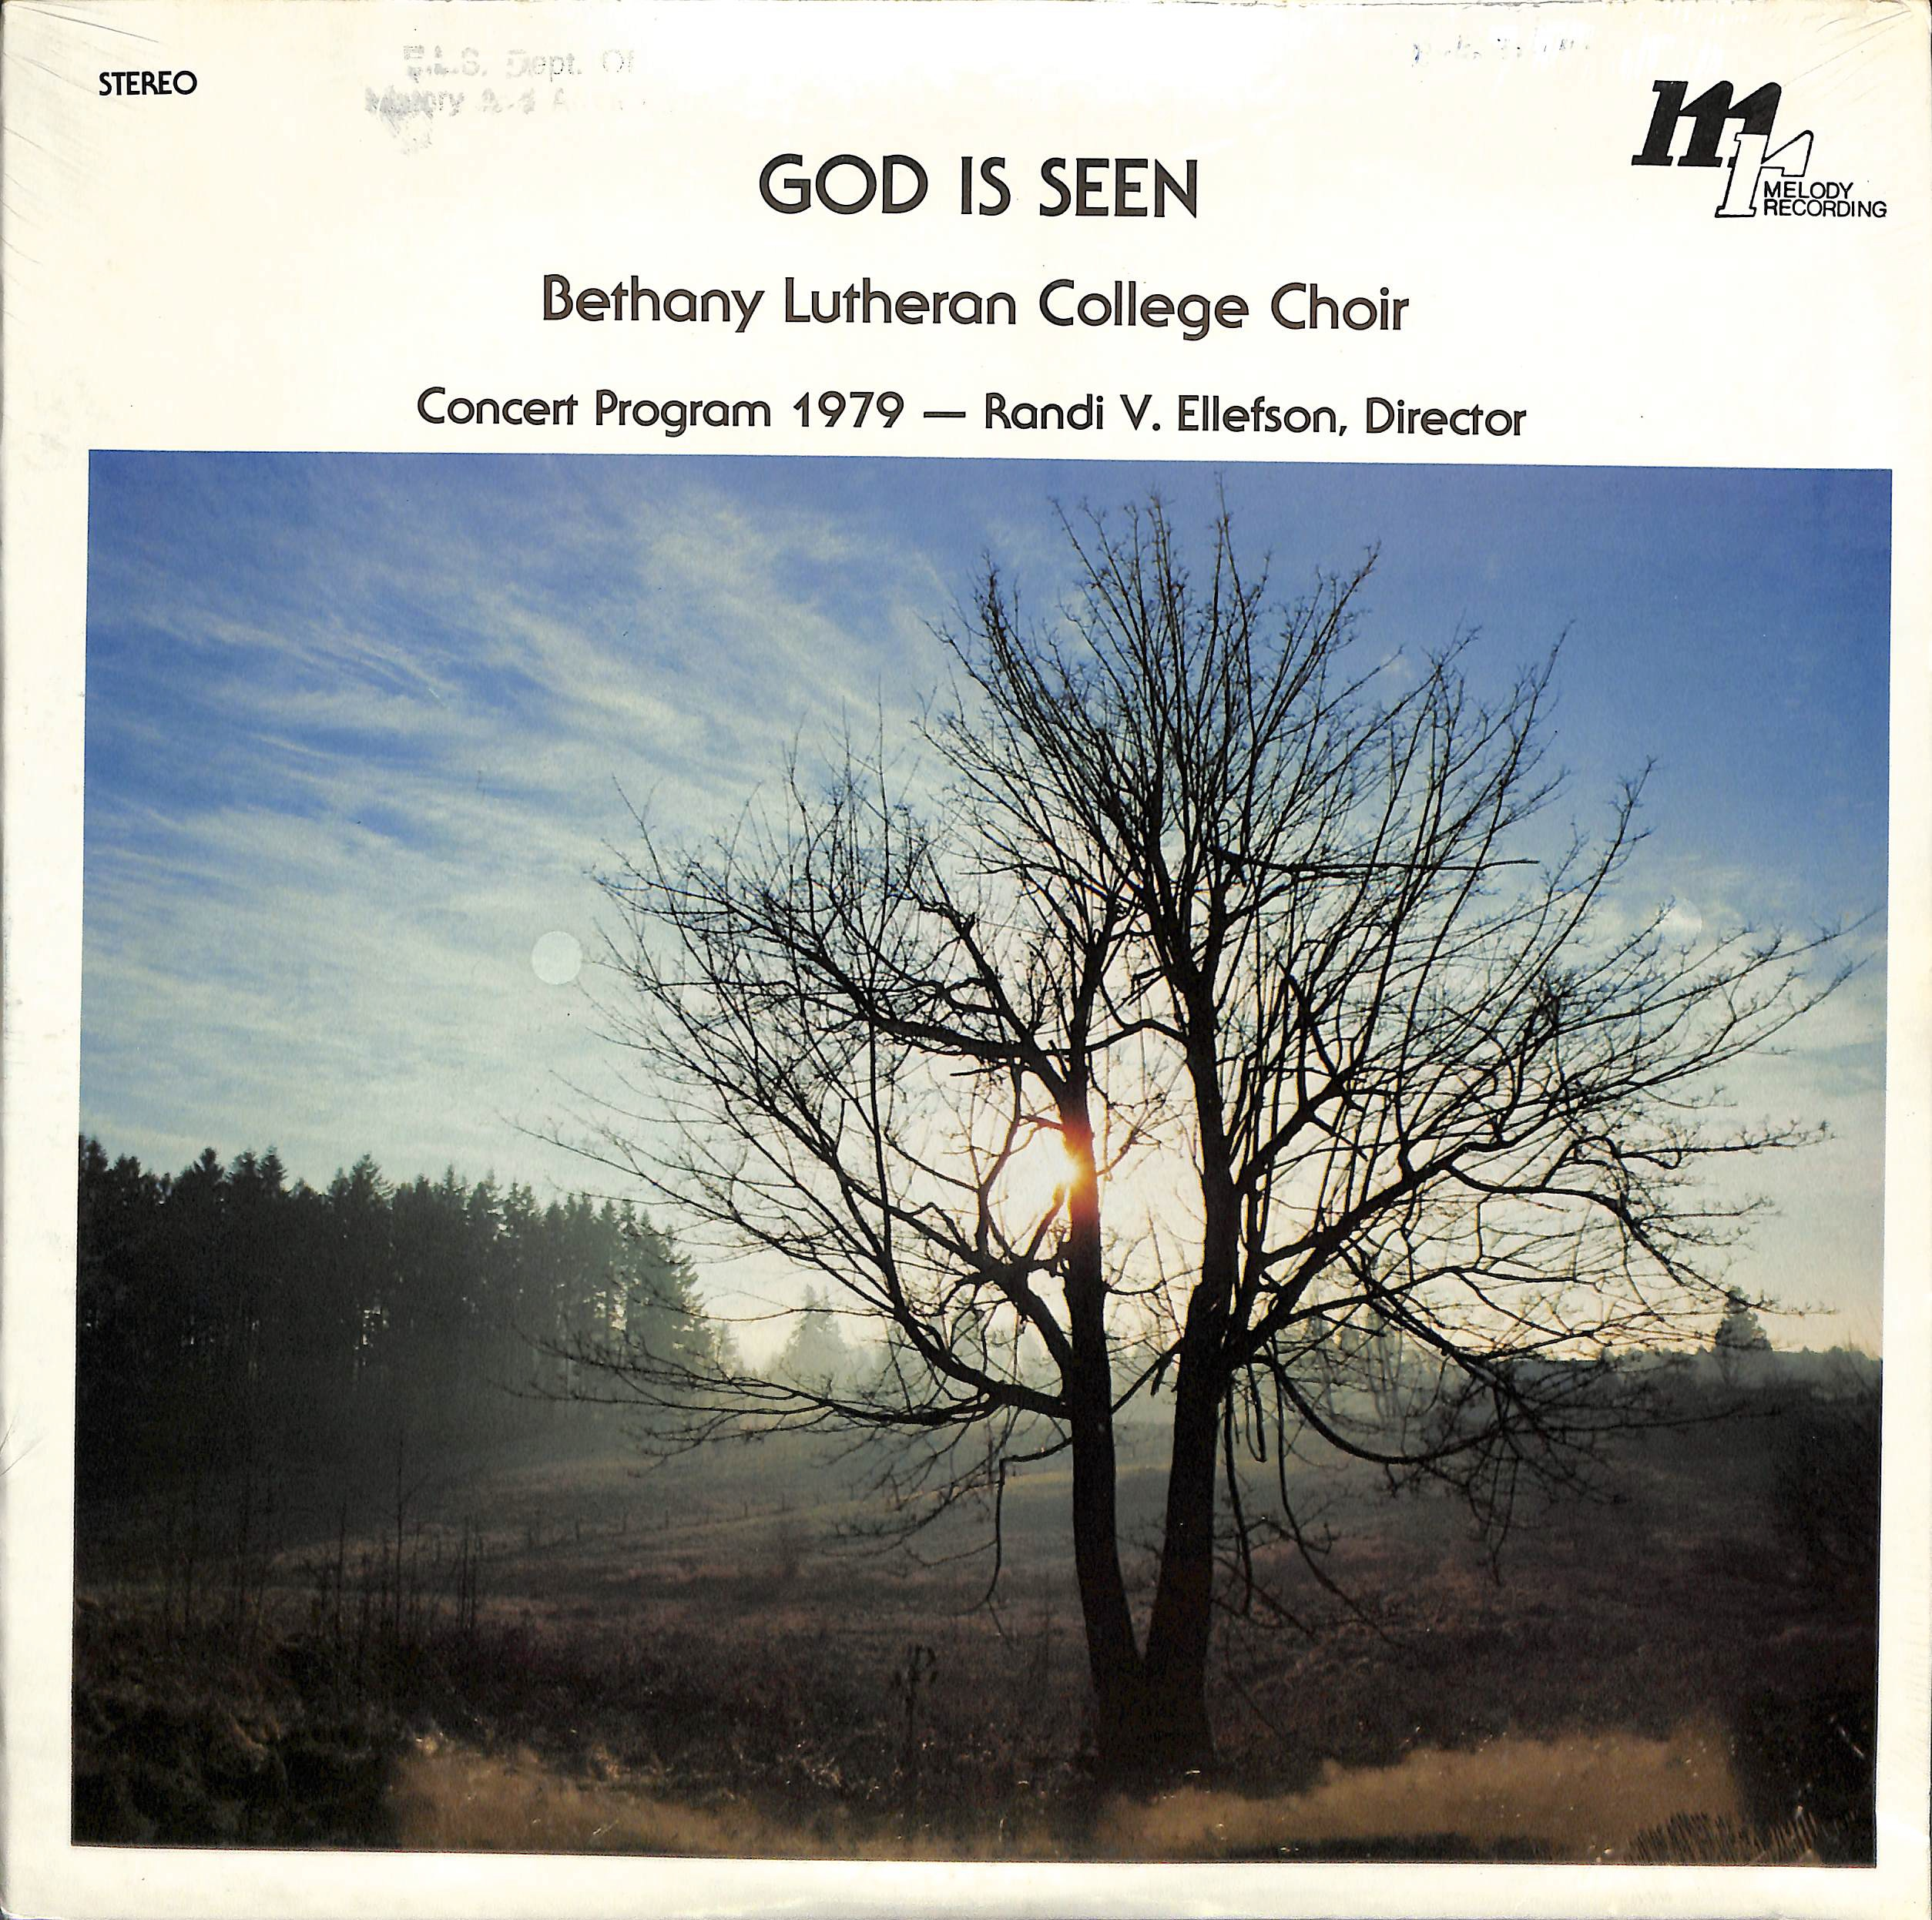 The Bethany Lutheran College Choir 1979: God is Seen